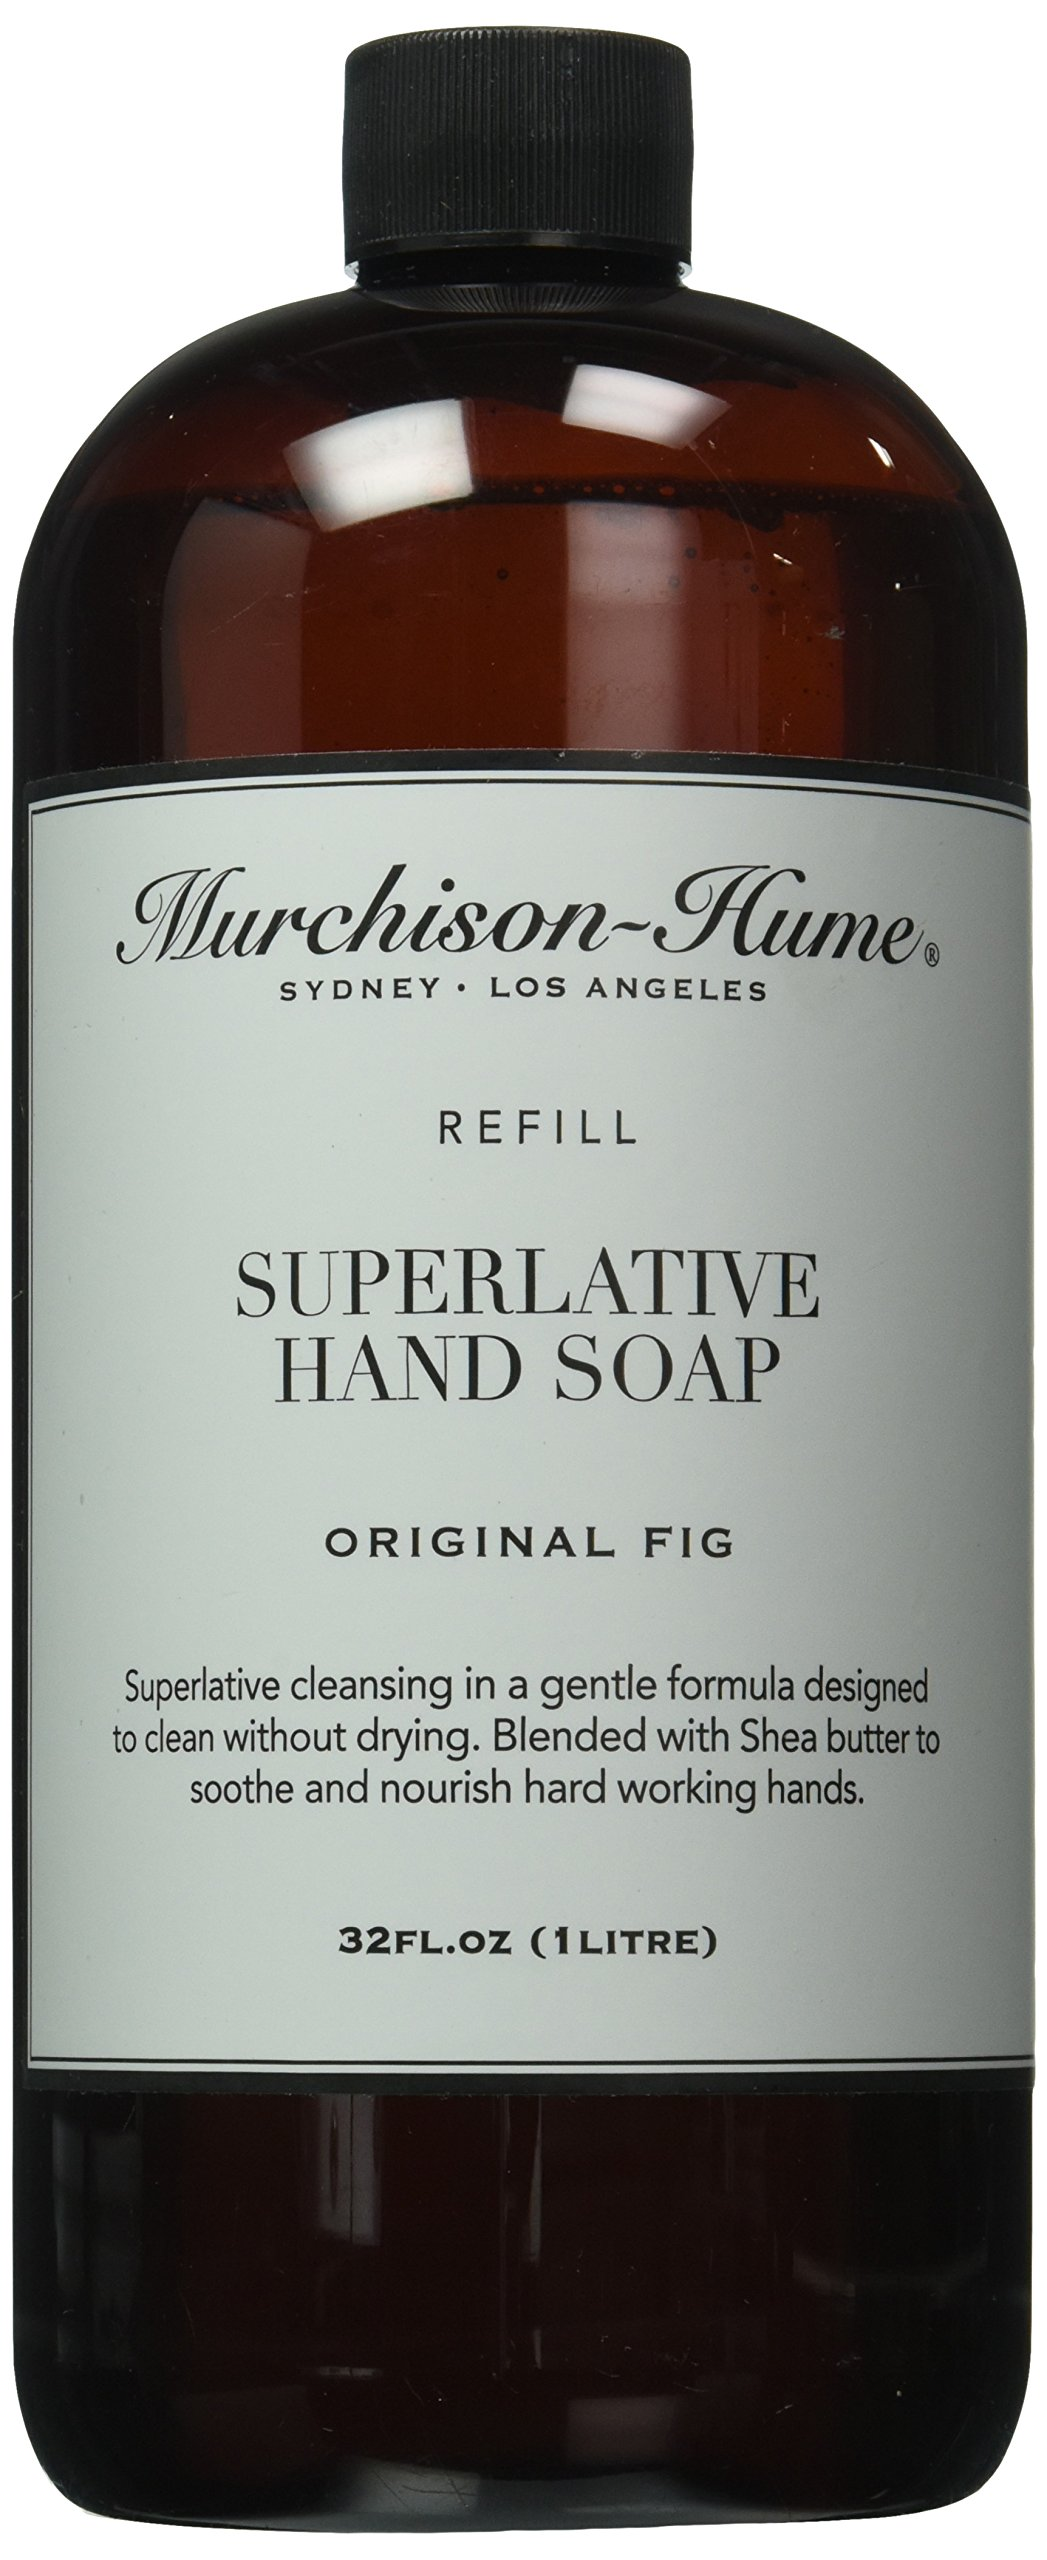 Murchison-Hume Superlative Hand Soap Refill, Original Fig, 32 Ounces